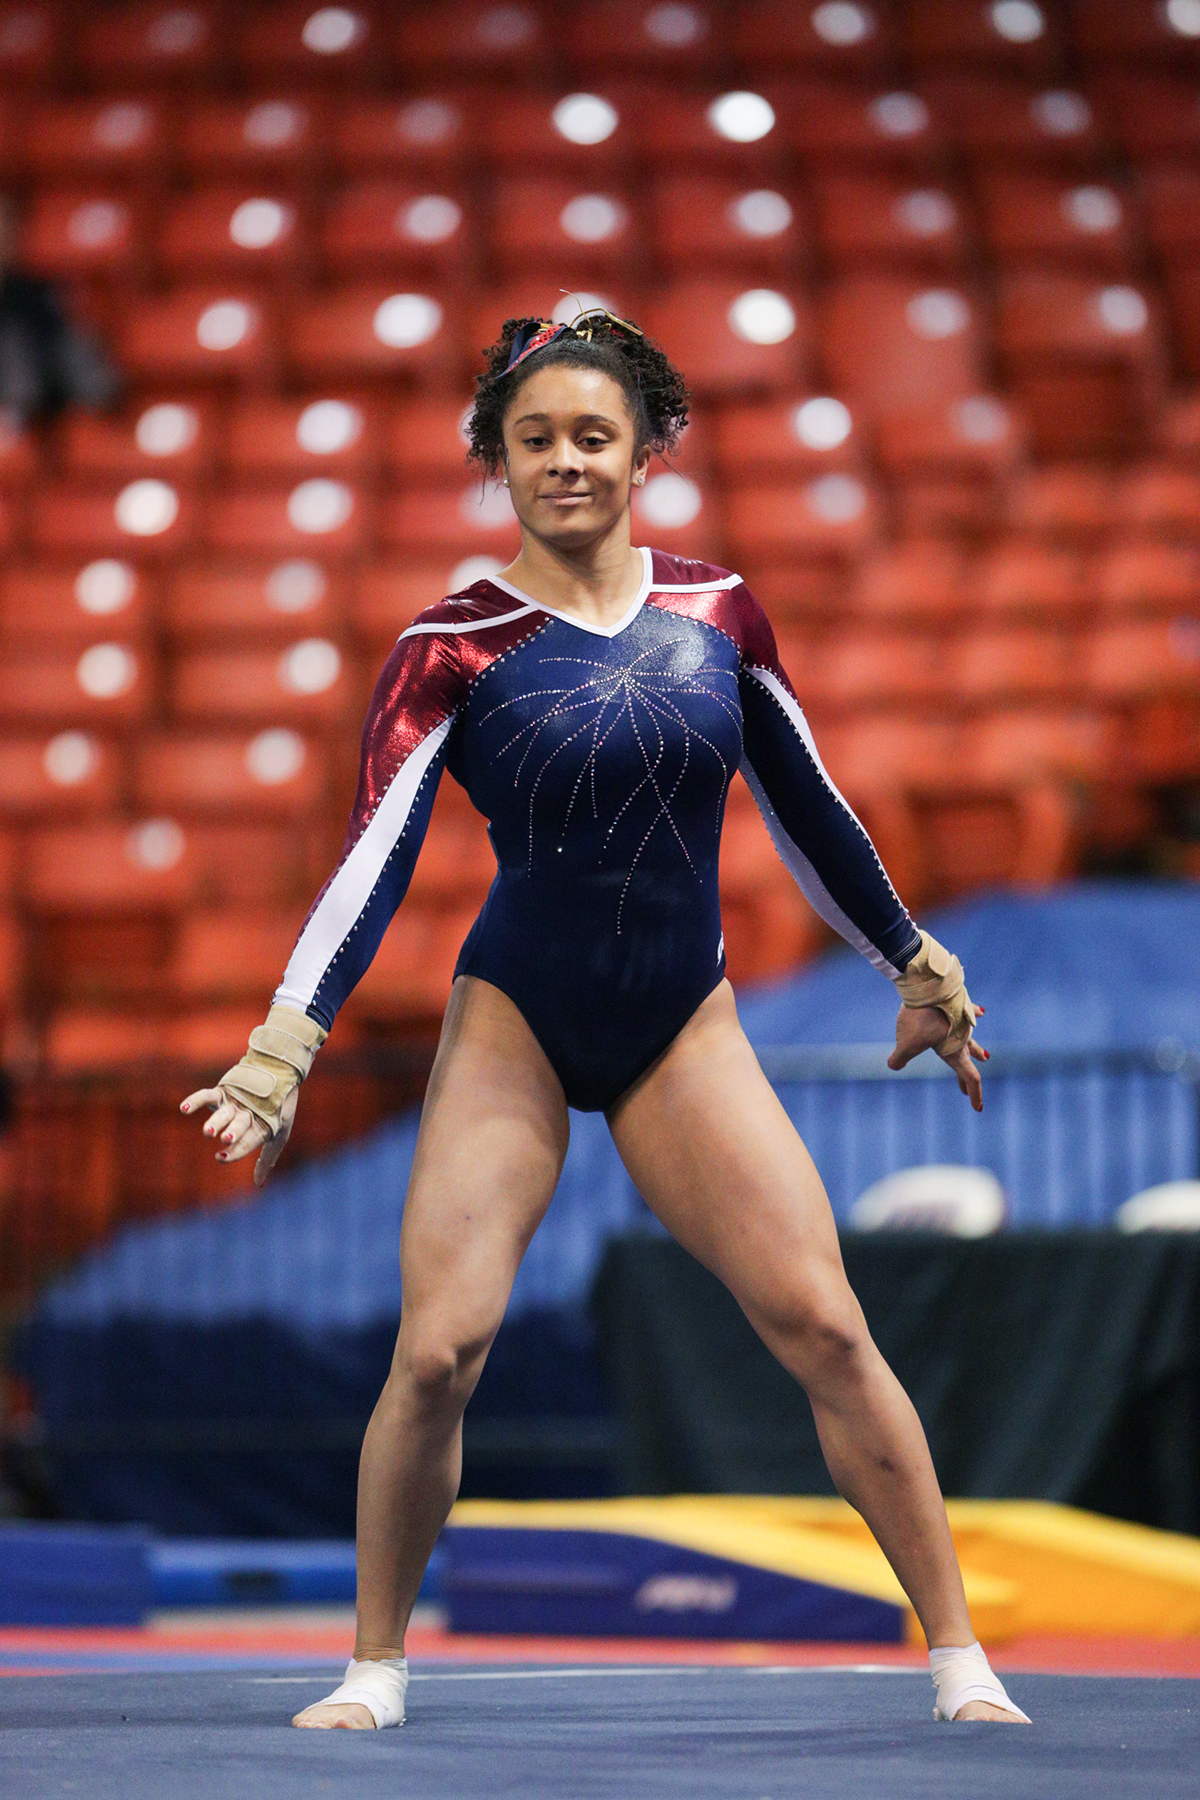 Gymnast Competes In Ncaa Regionals Uic Today